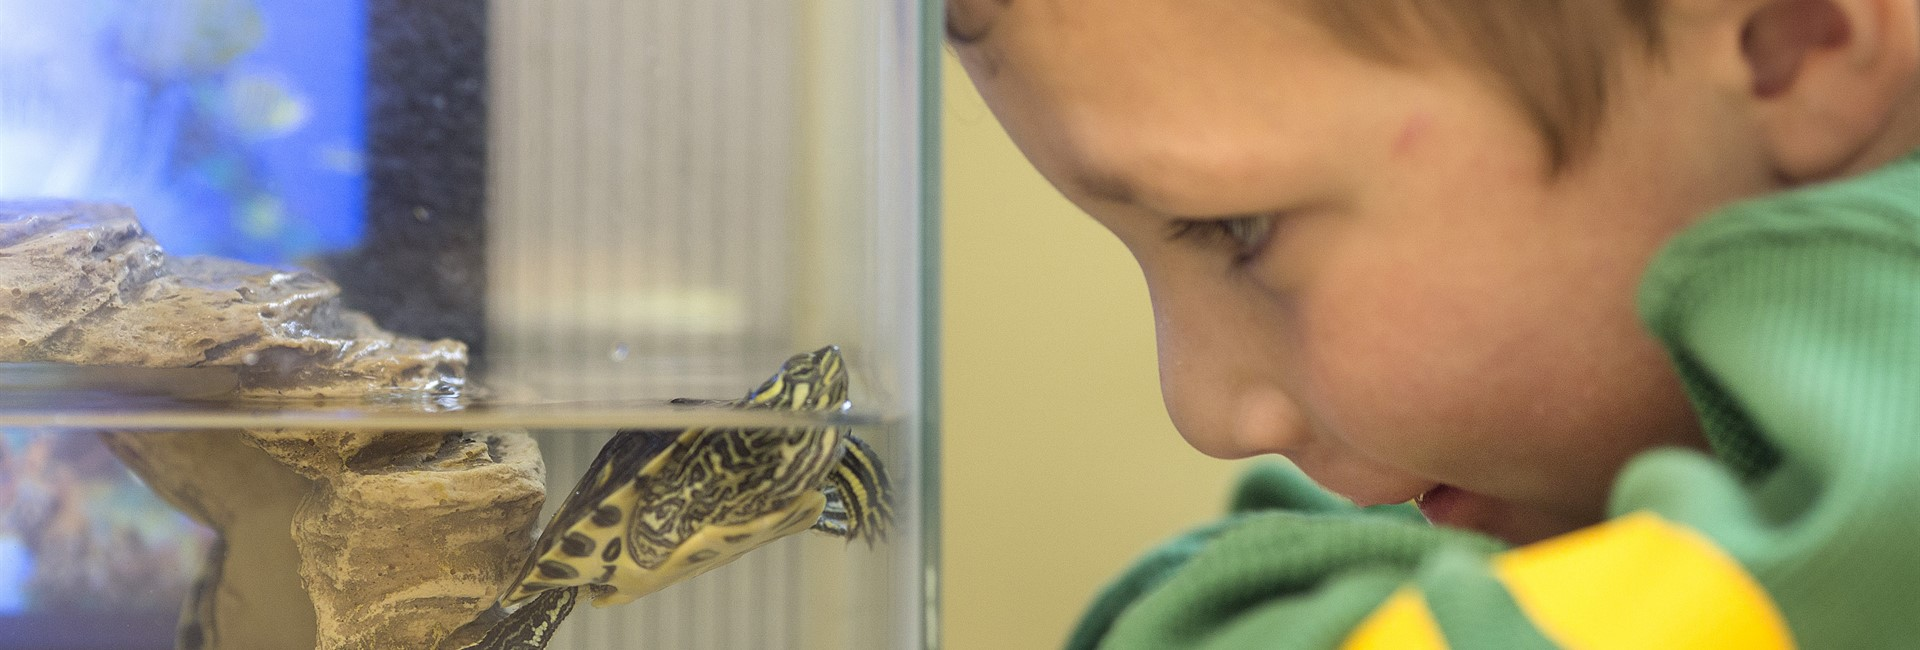 Student and turtle see eye to eye.